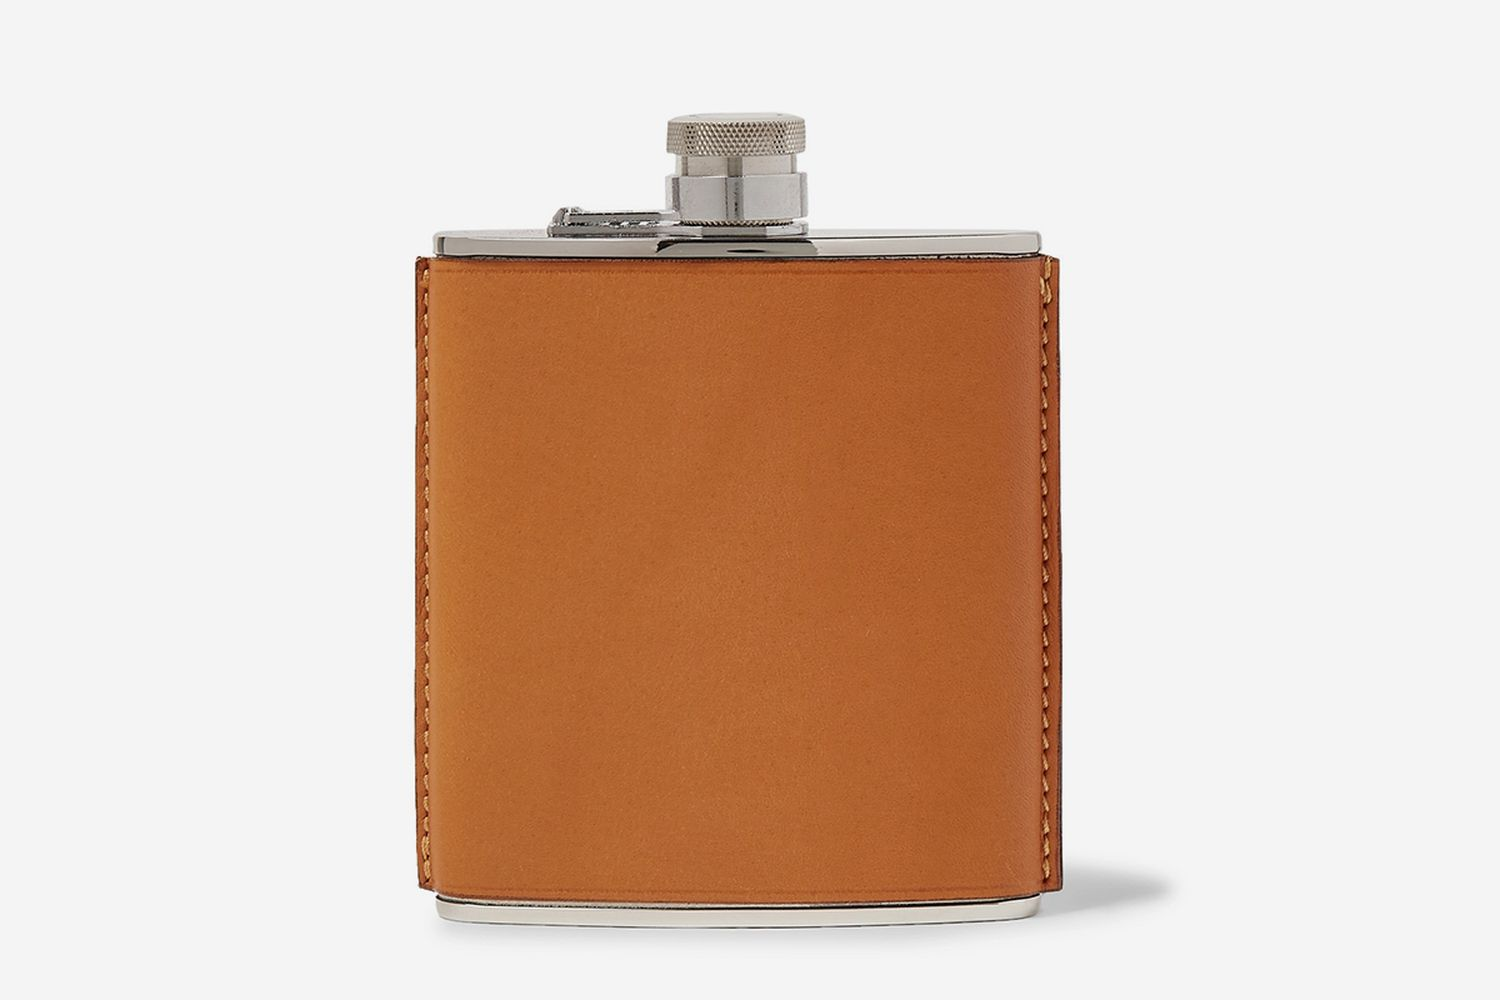 6oz Leather And Stainless Steel Flask